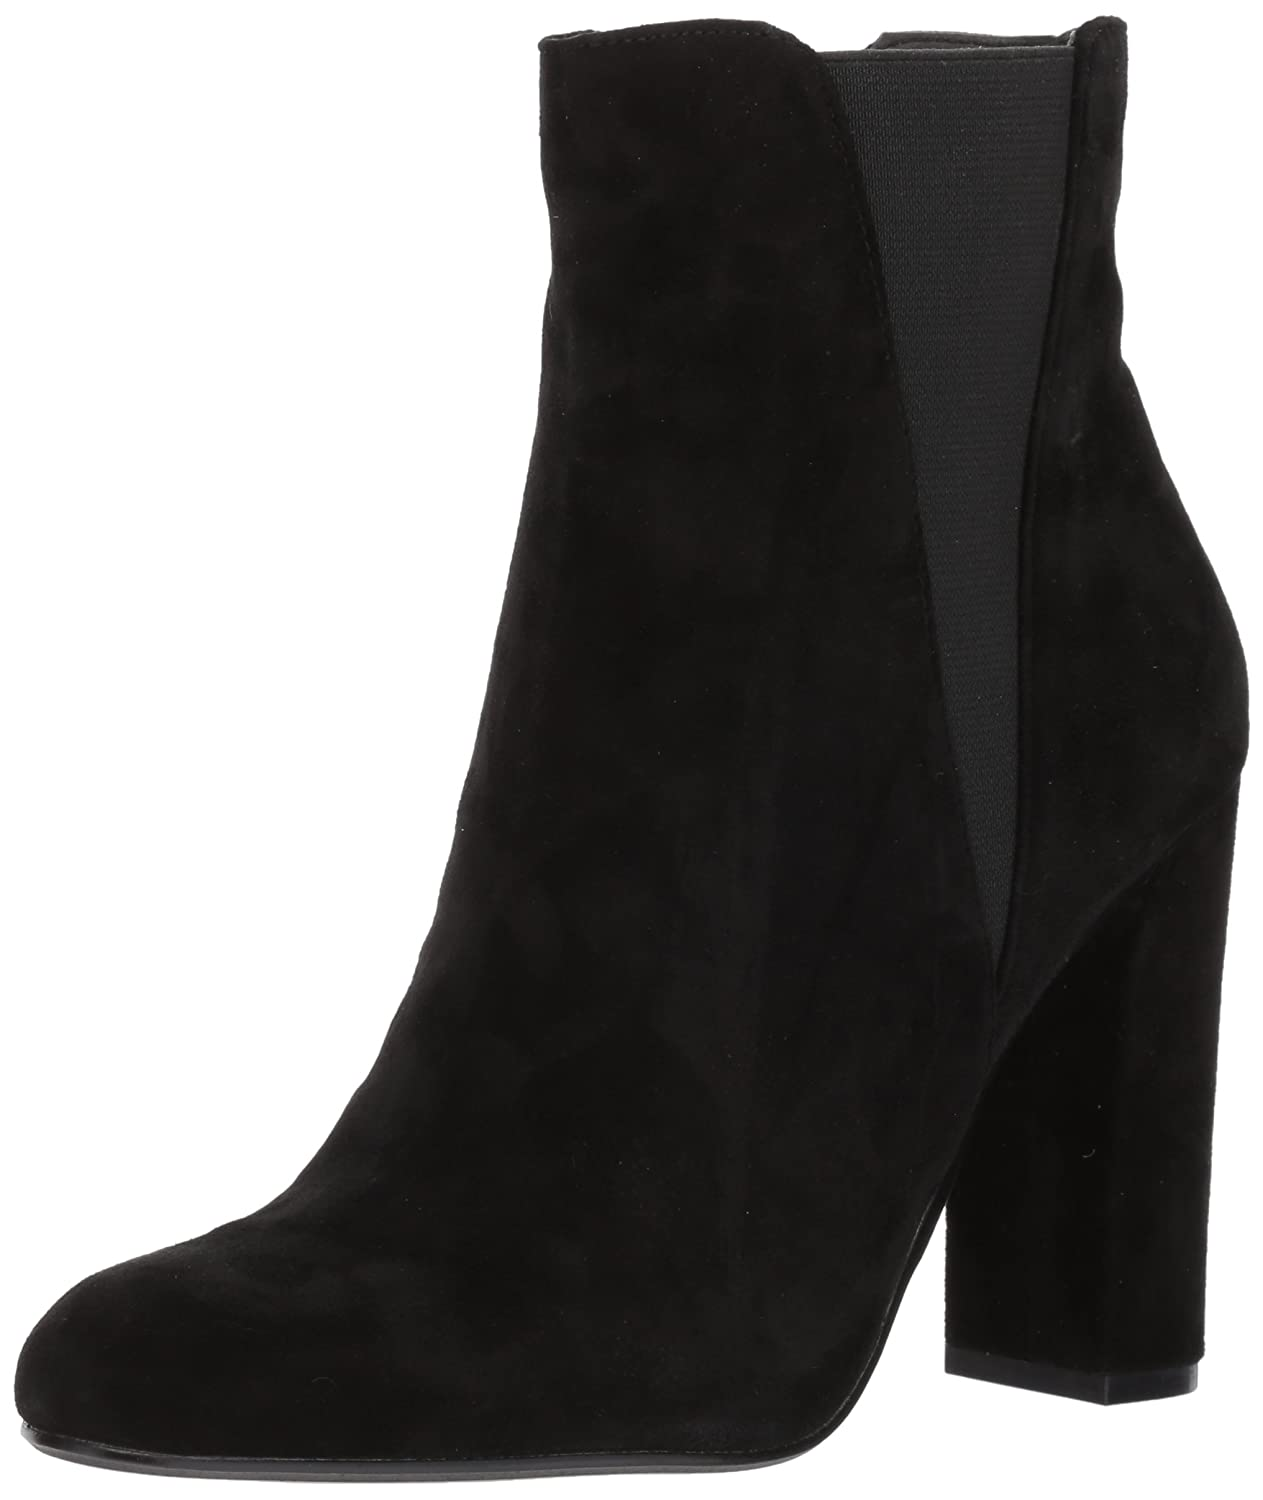 Steve Madden Women's Effect Ankle Boot B06XHFXL7H 6 B(M) US|Black Suede